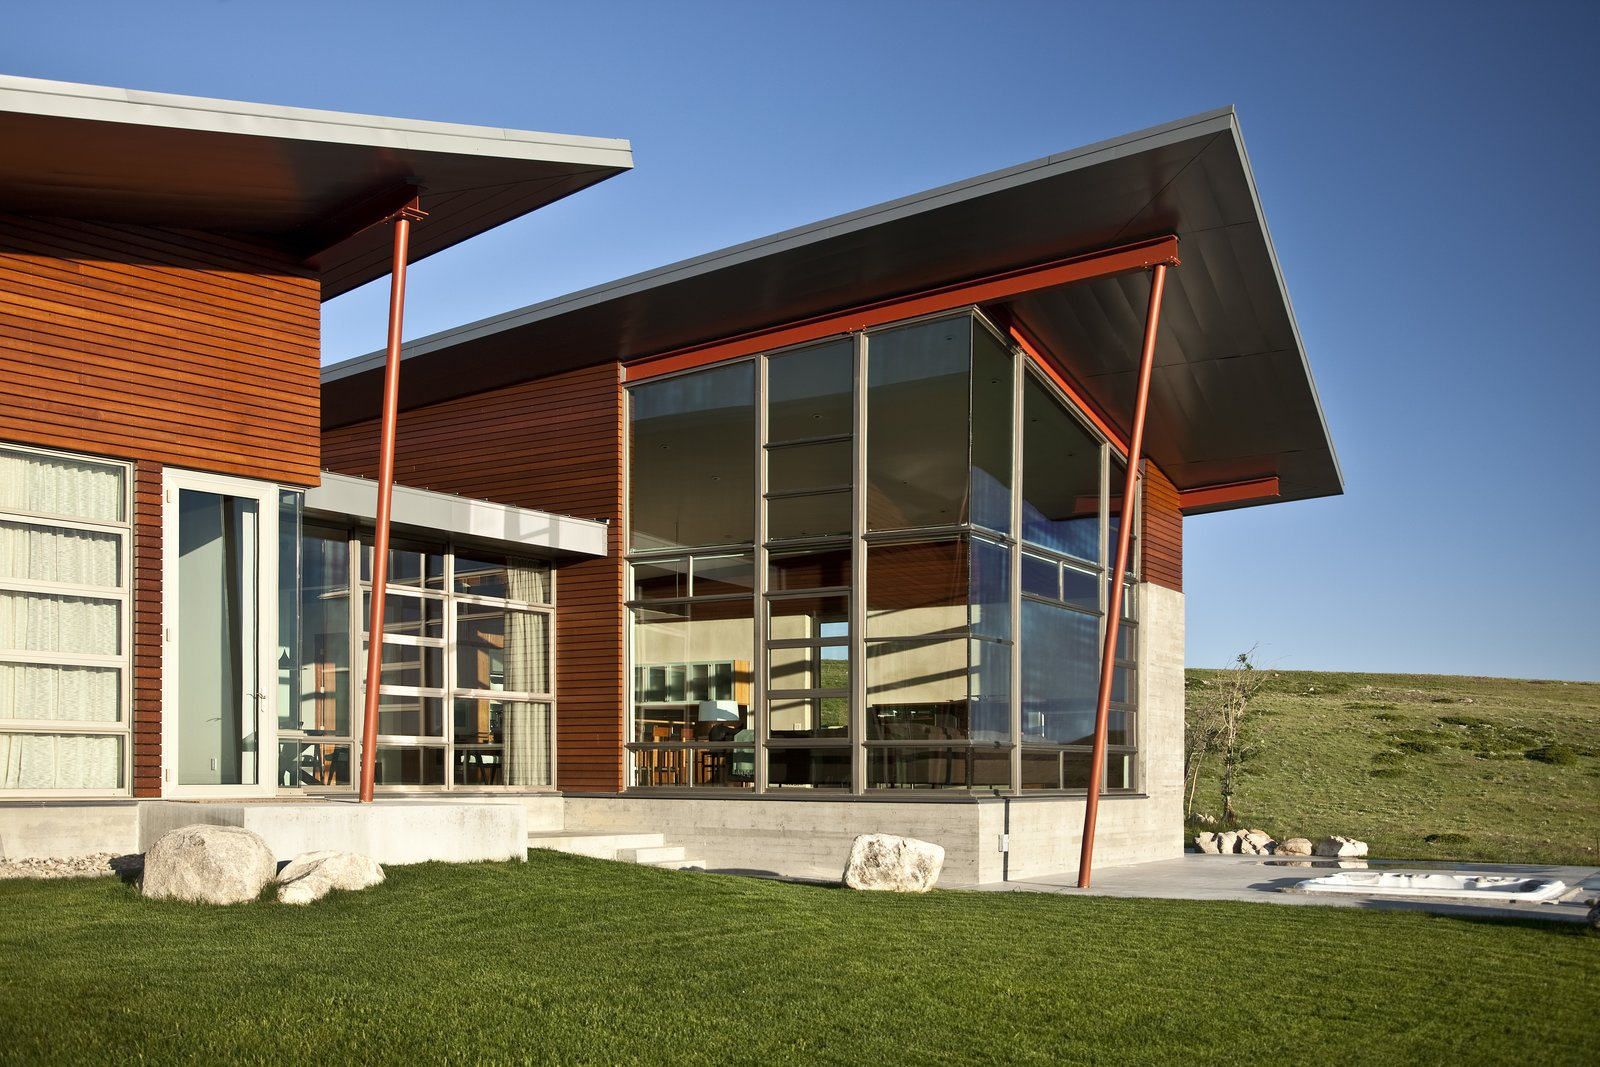 The ATA design team wanted to bring that indoor-outdoor California feeling to this home in Wyoming by highlighting its physical connection to the land. Because of the climate, however, they opted for expansive windows, not expansive openings, to capture the beautiful quality of light and the picturesque view. These windows are layered with concrete, steel and wood to converge in textural detail, accenting the sloping wings and defining a natural focal point.   Casper Residence by Abramson Teiger Architects